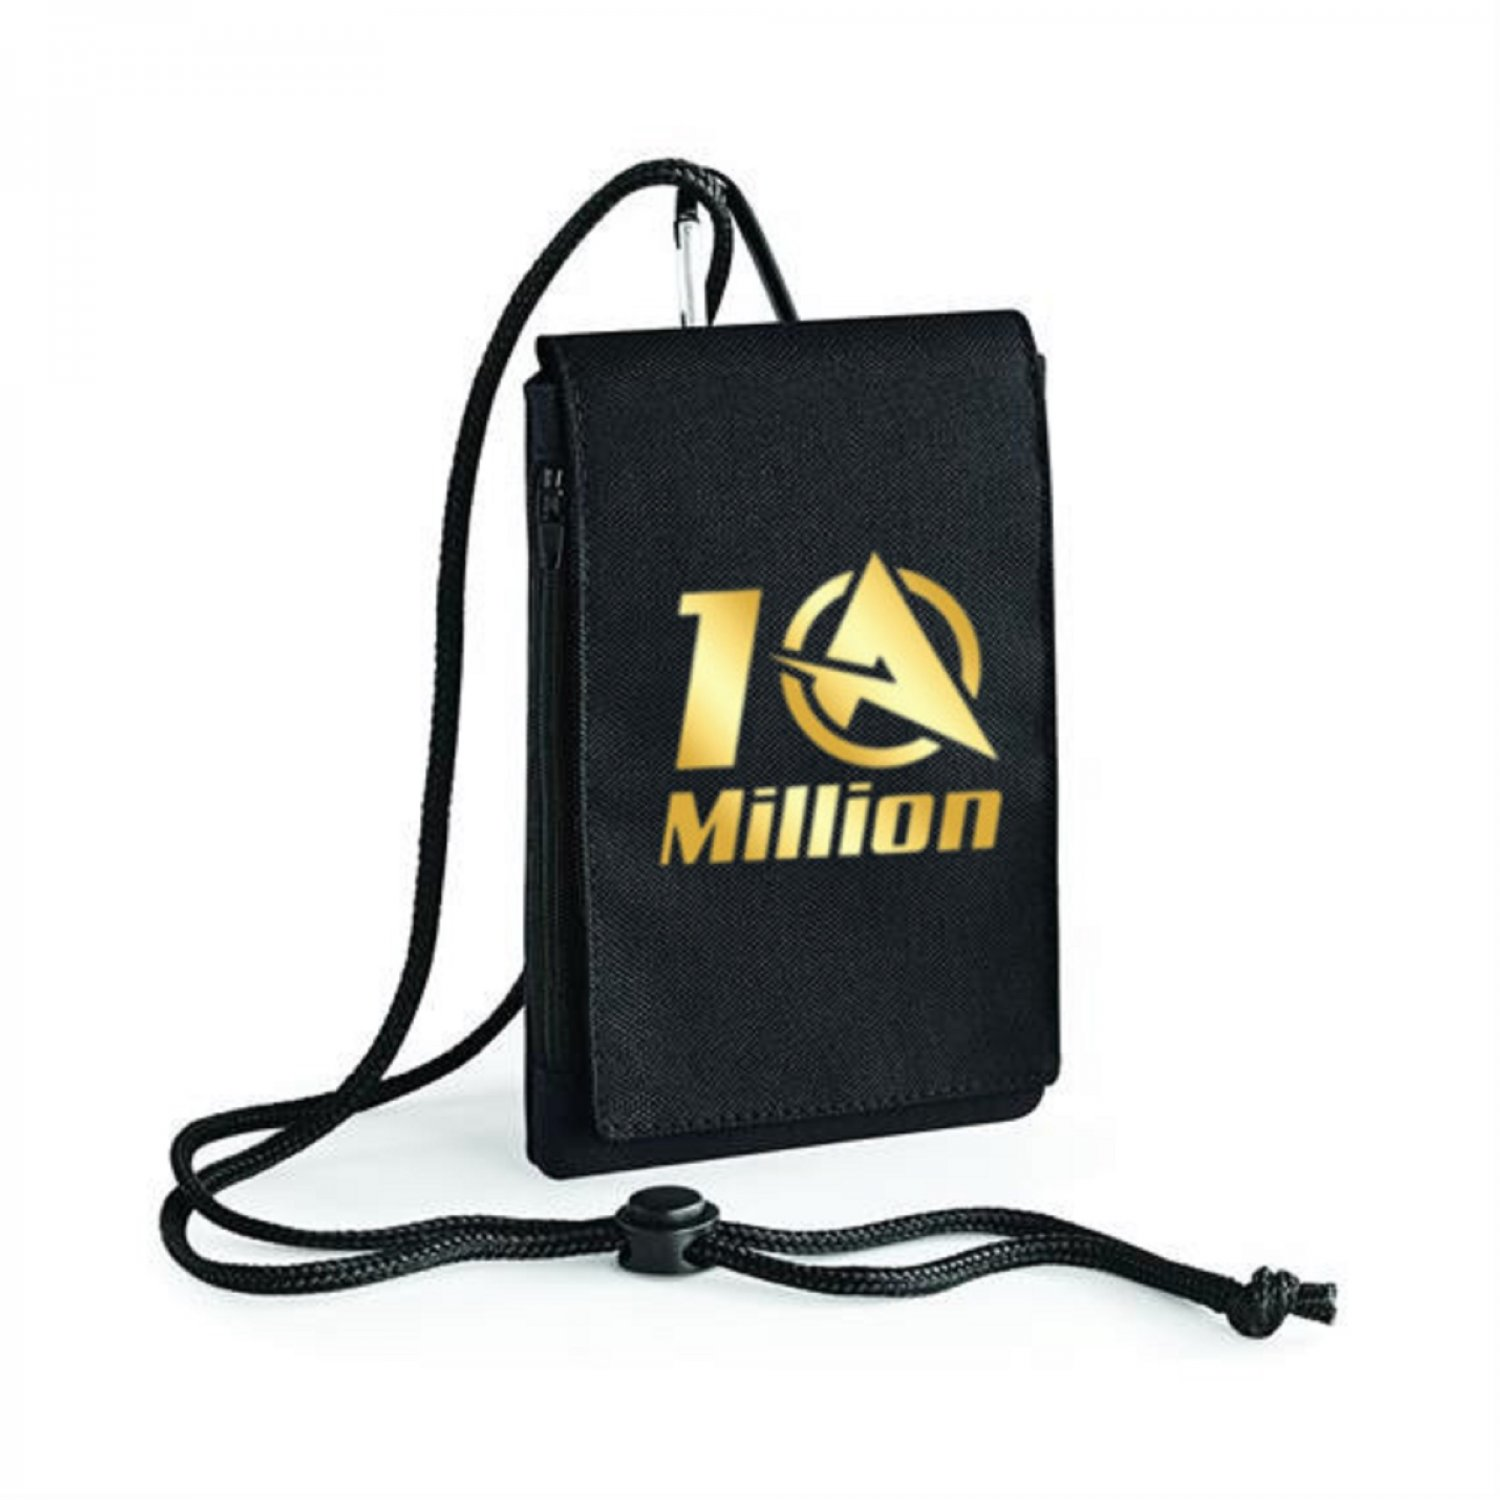 Ali-A 10 MILLION Inspired Bagbase Phone Pouch